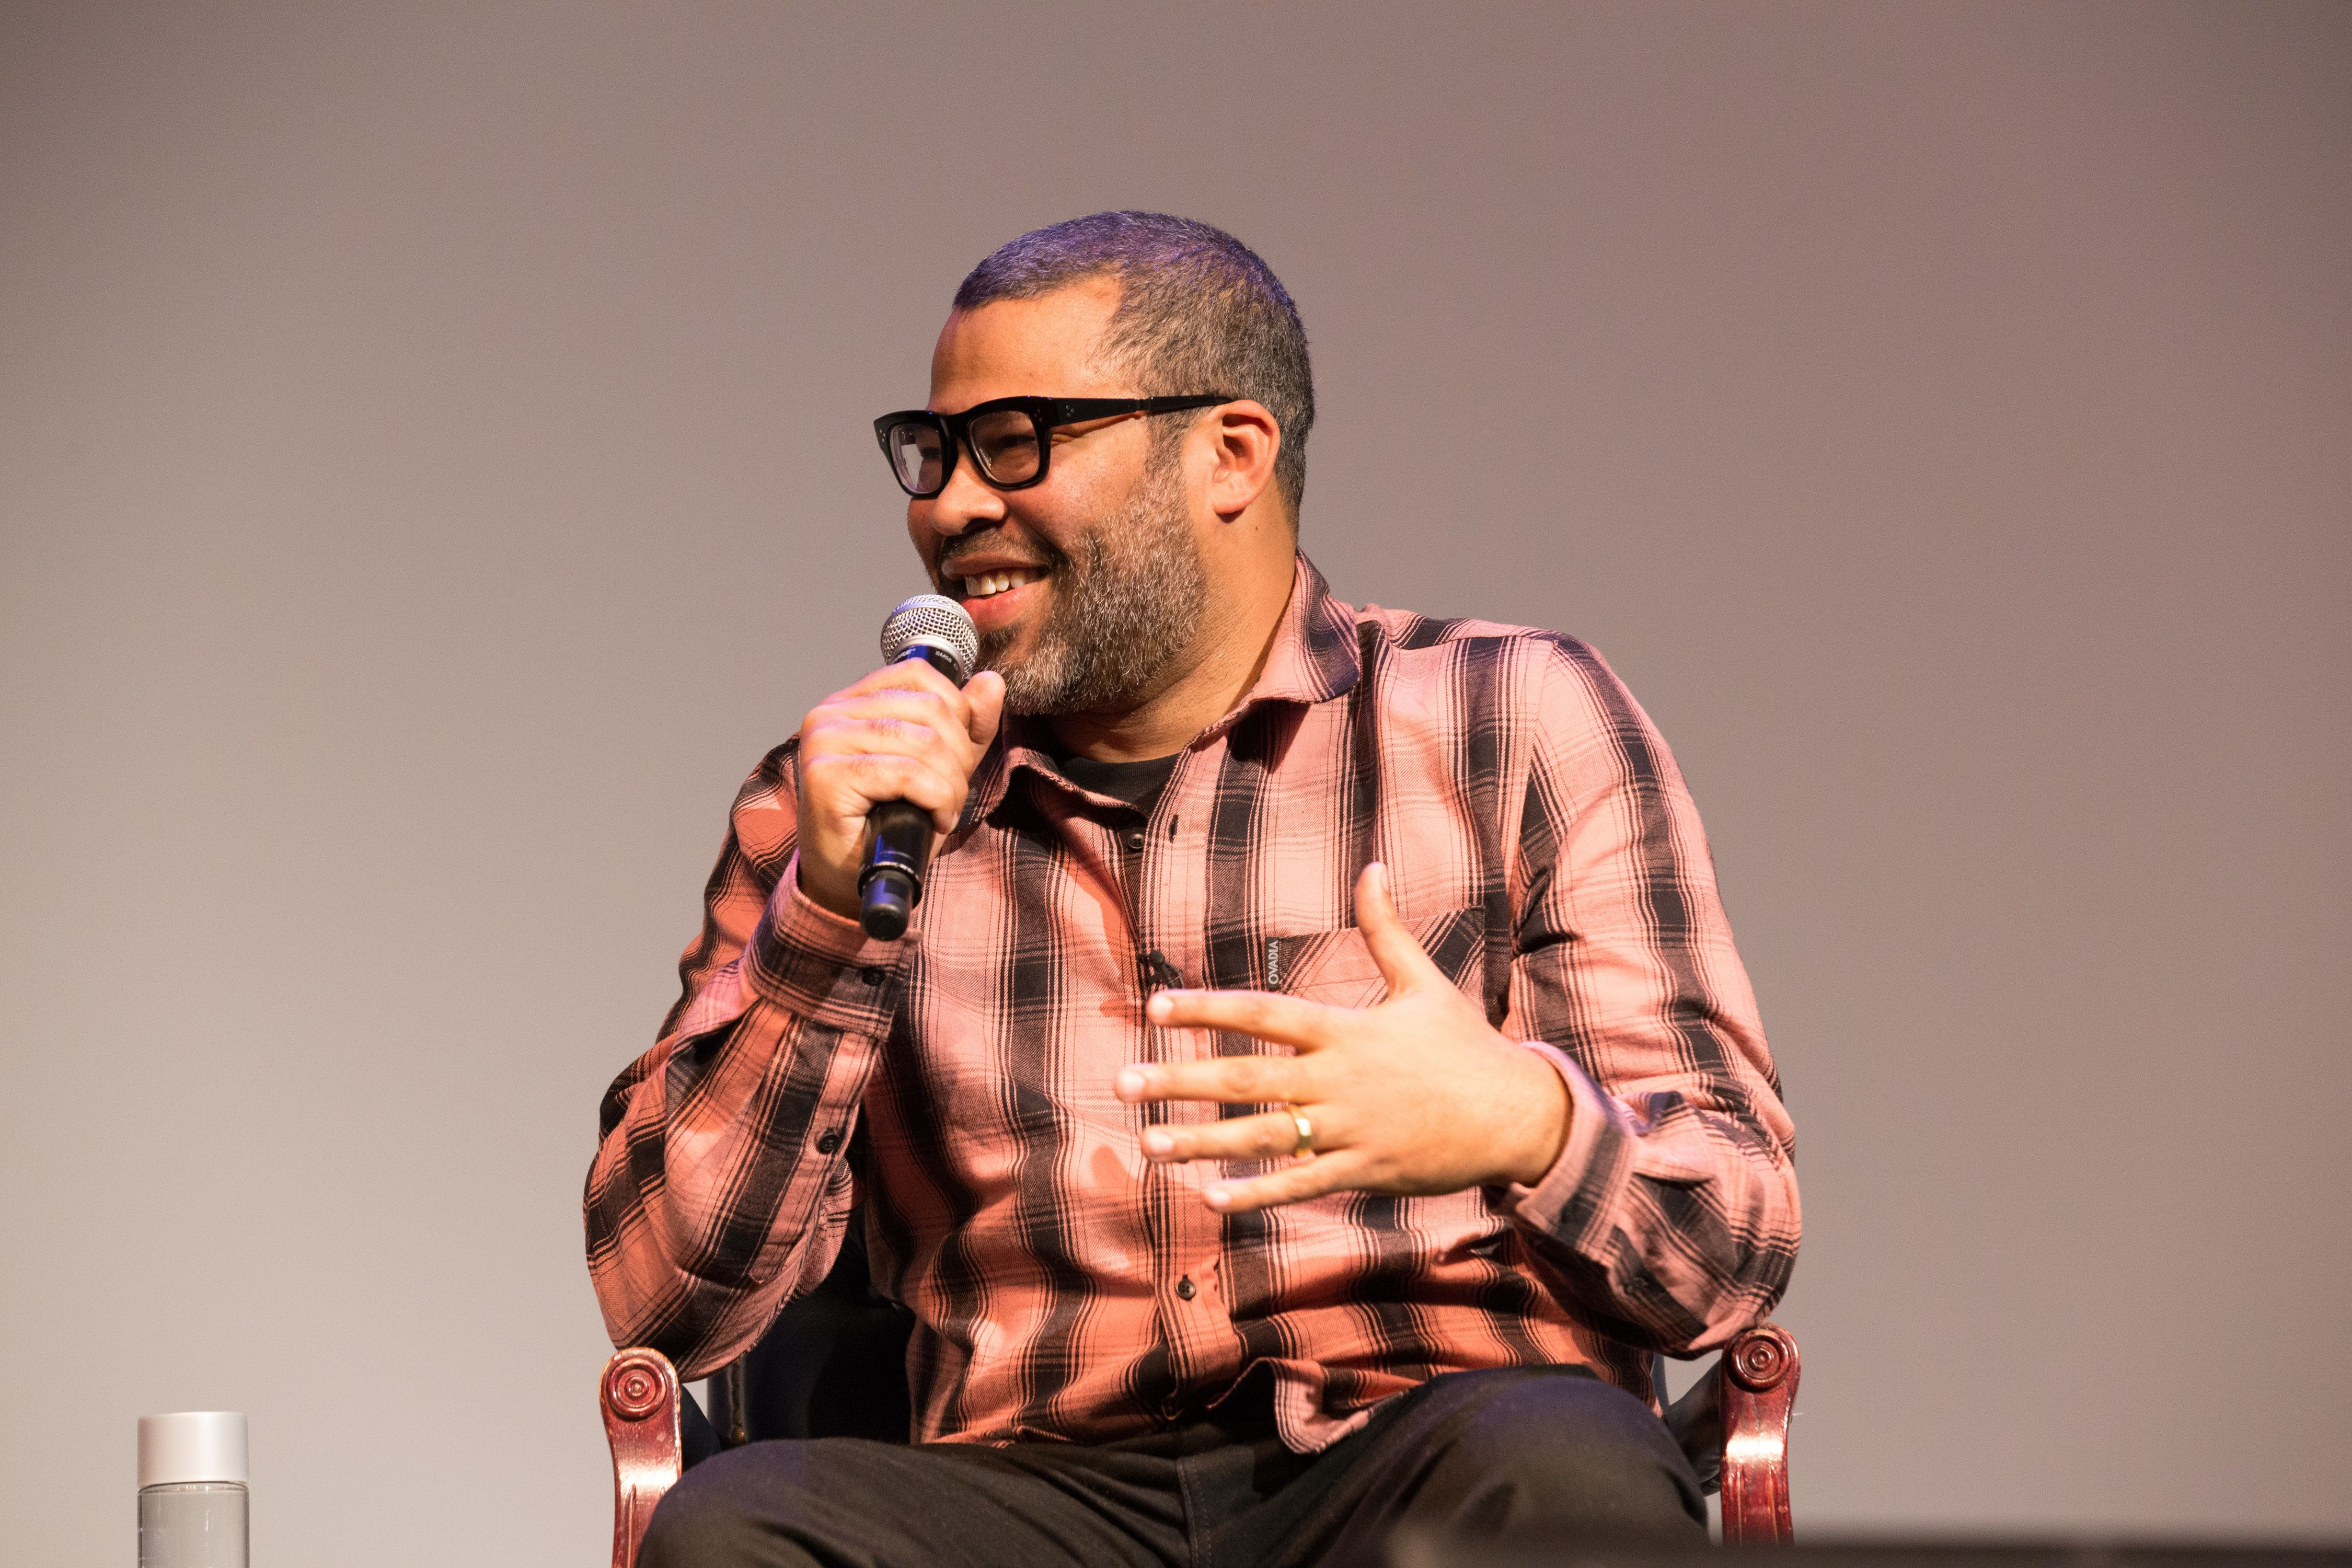 WASHINGTON, DC - MARCH 20: Jordan Peele attends 'US'  movie screening at Howard University on March 20, 2019 in Washington, DC. (Photo by Brian Stukes/Getty Images)